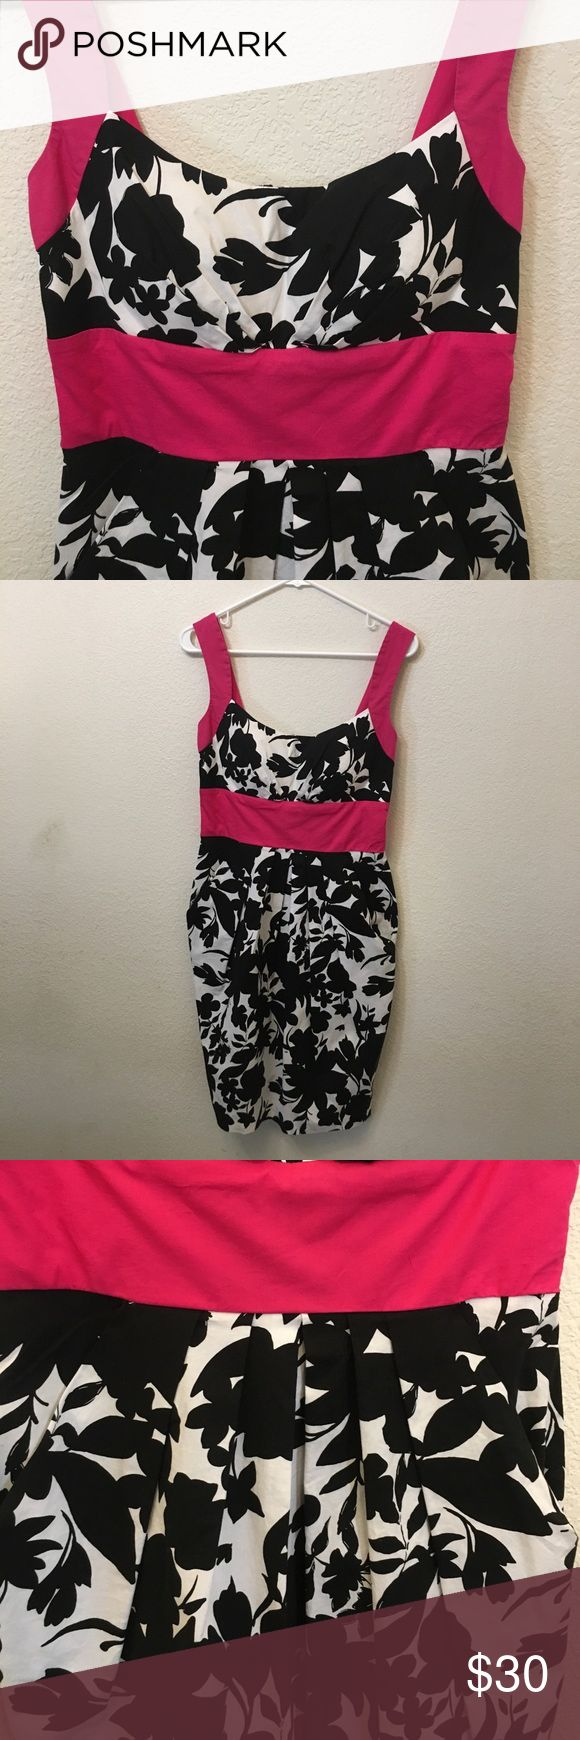 Floral Dress Hot pink, non- adjustable straps with black and white floral print. Has 2 pockets, one on either hip. Zip closure. Non- removable pads.  Straps are about 1 and a half inches thick. It is about 3 feet from top of shoulder to bottom of dress. B. Smart Dresses Mini